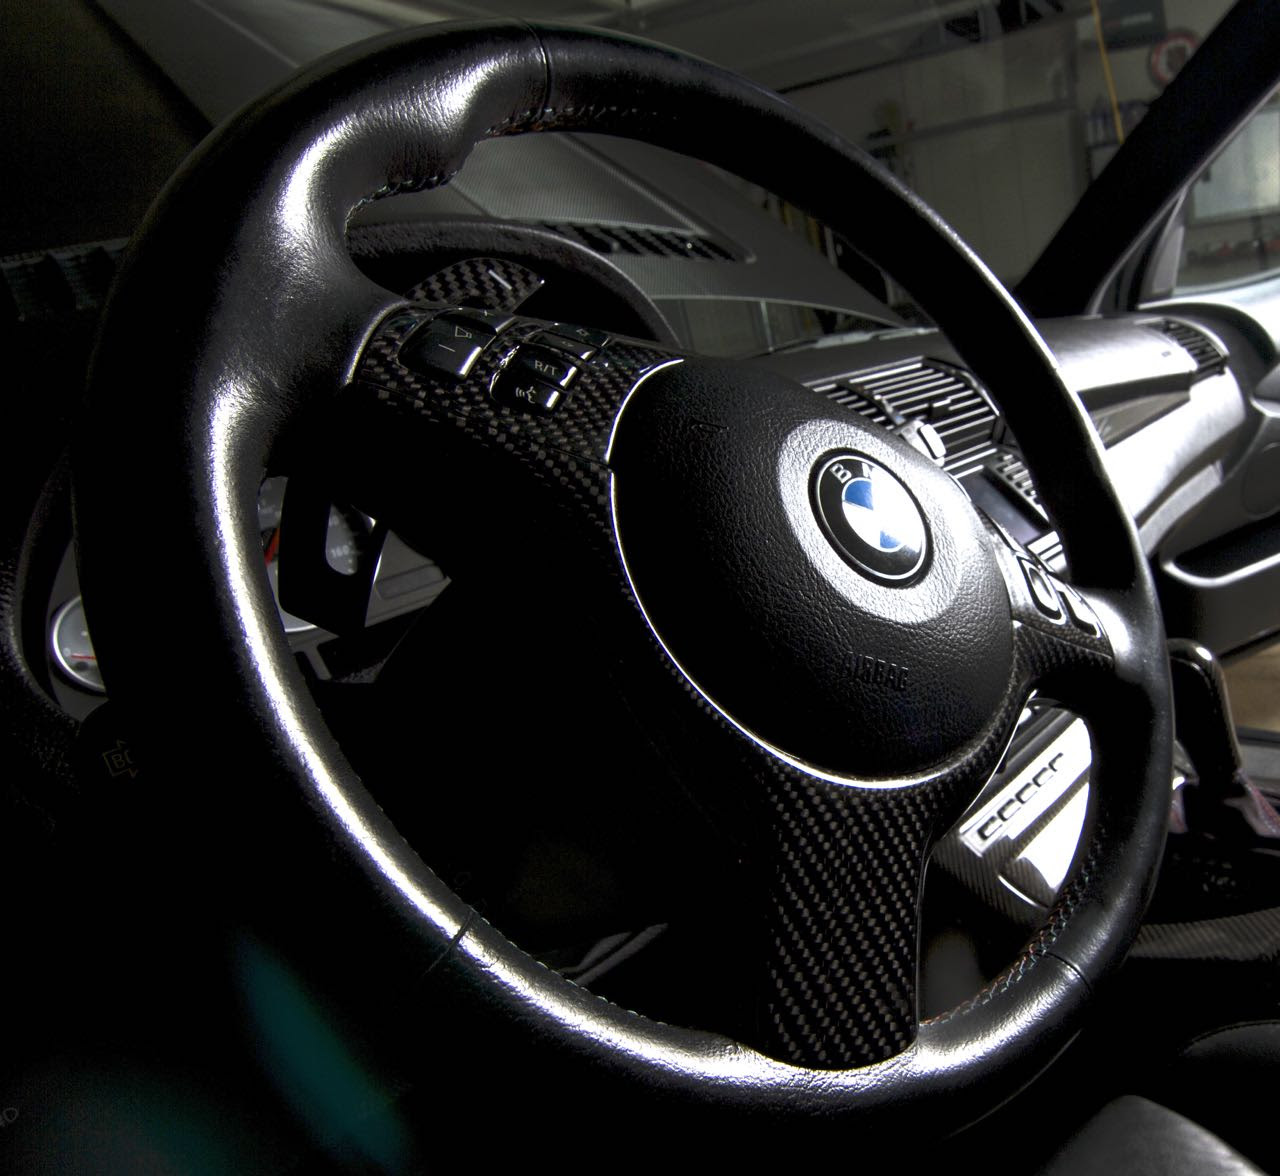 E53 Steering Wheel Conversion To E46 Smg M3 Paddle Shift